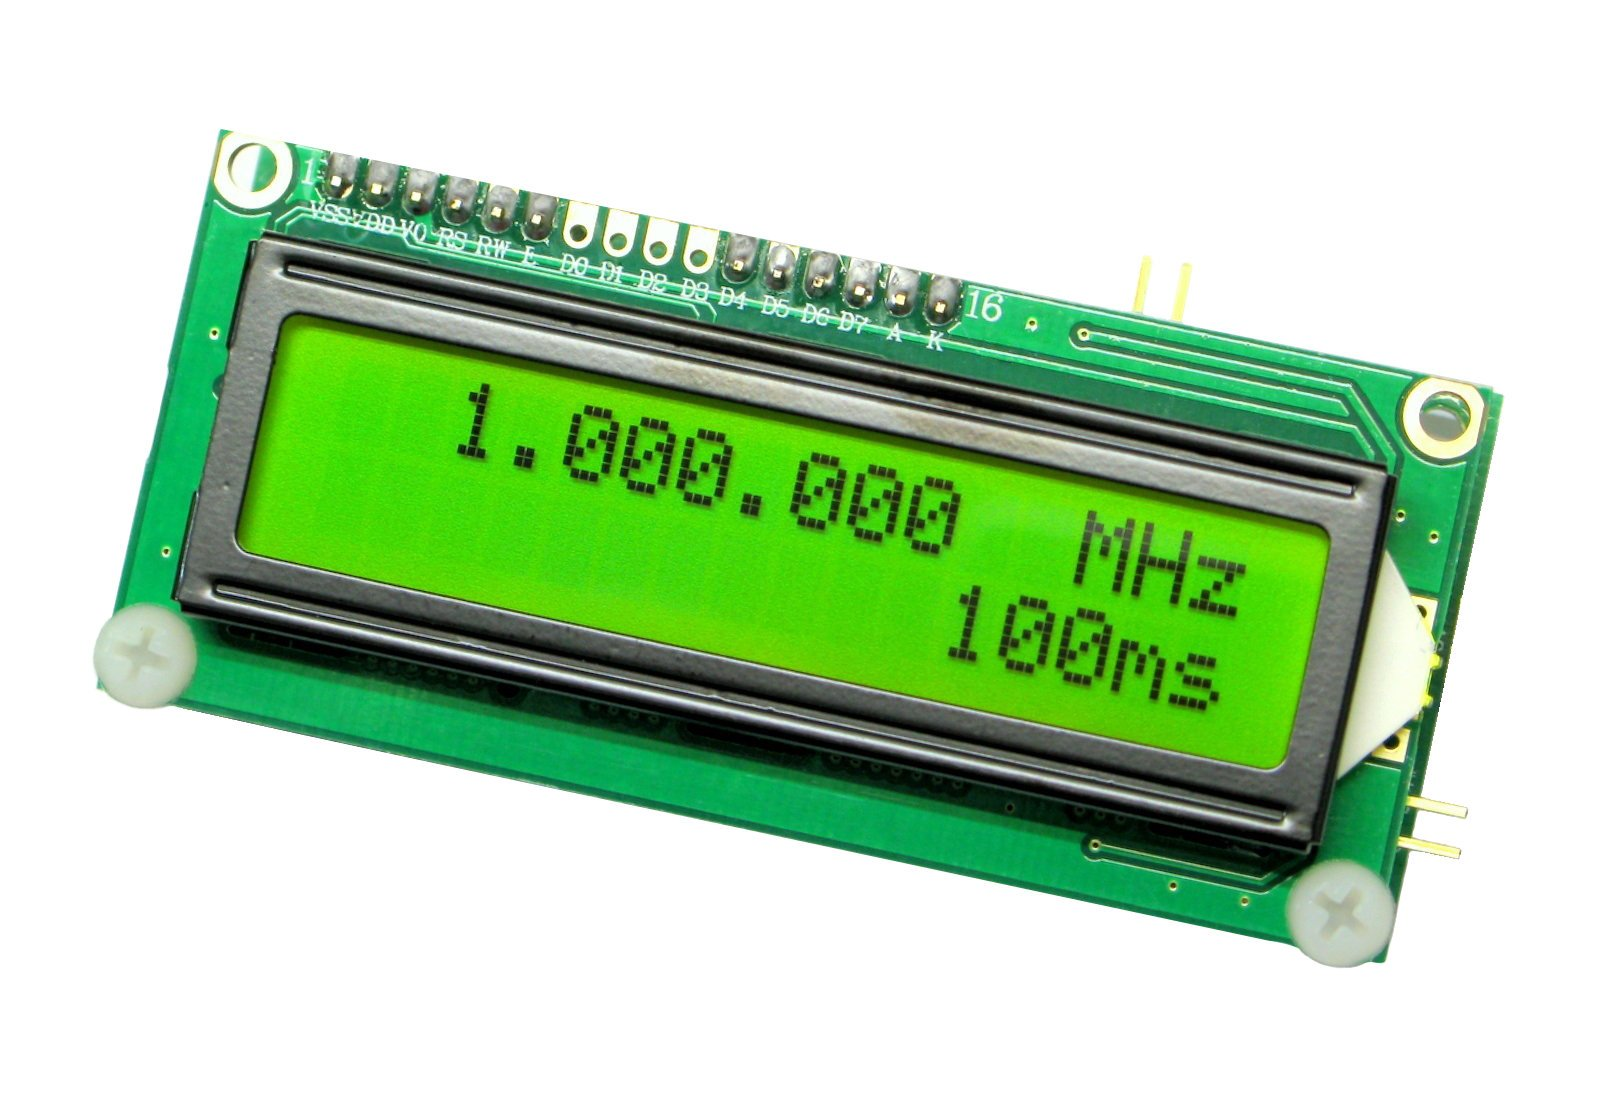 Frequency Counter Kit : Frequency counter diy kit w lcd hz mhz from rhgeiger